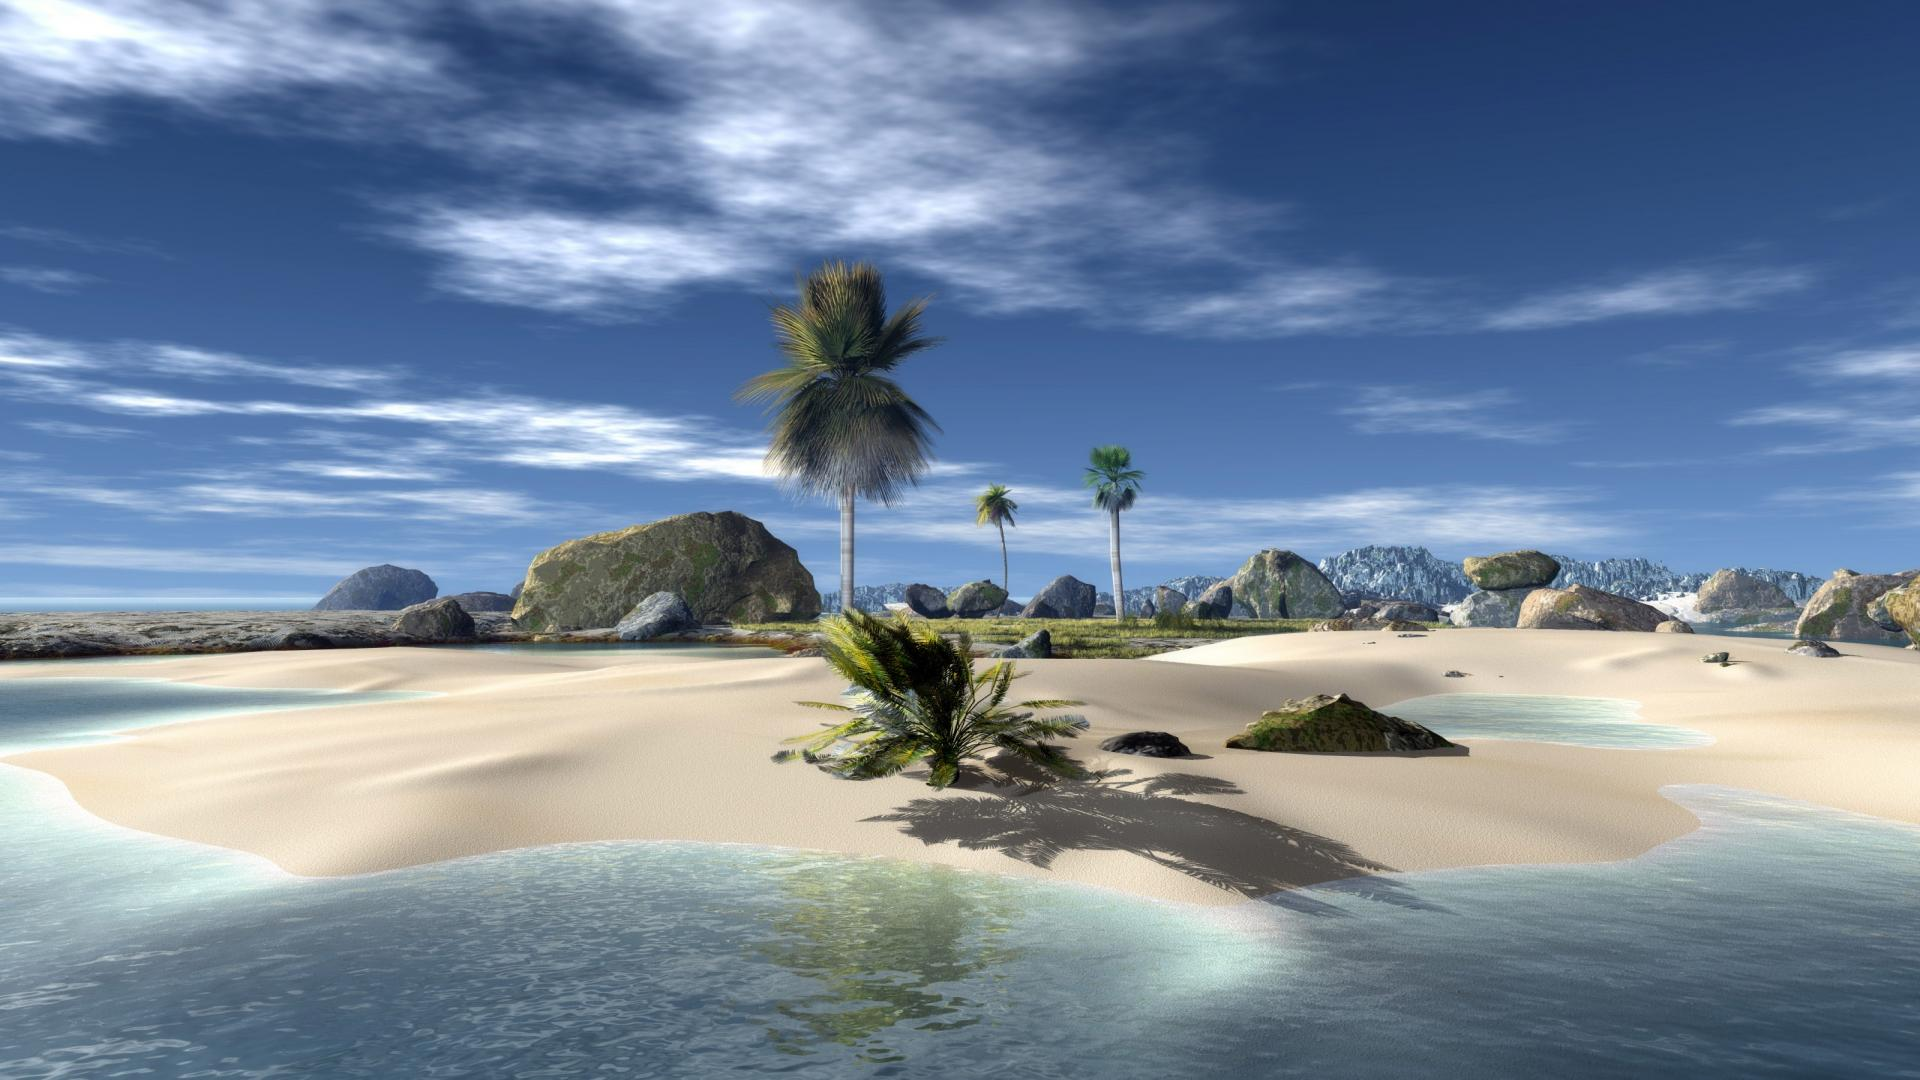 3D Beach HD Wallpapers 1920x1080 Beach Wallpapers 1920x1080 Download 1920x1080